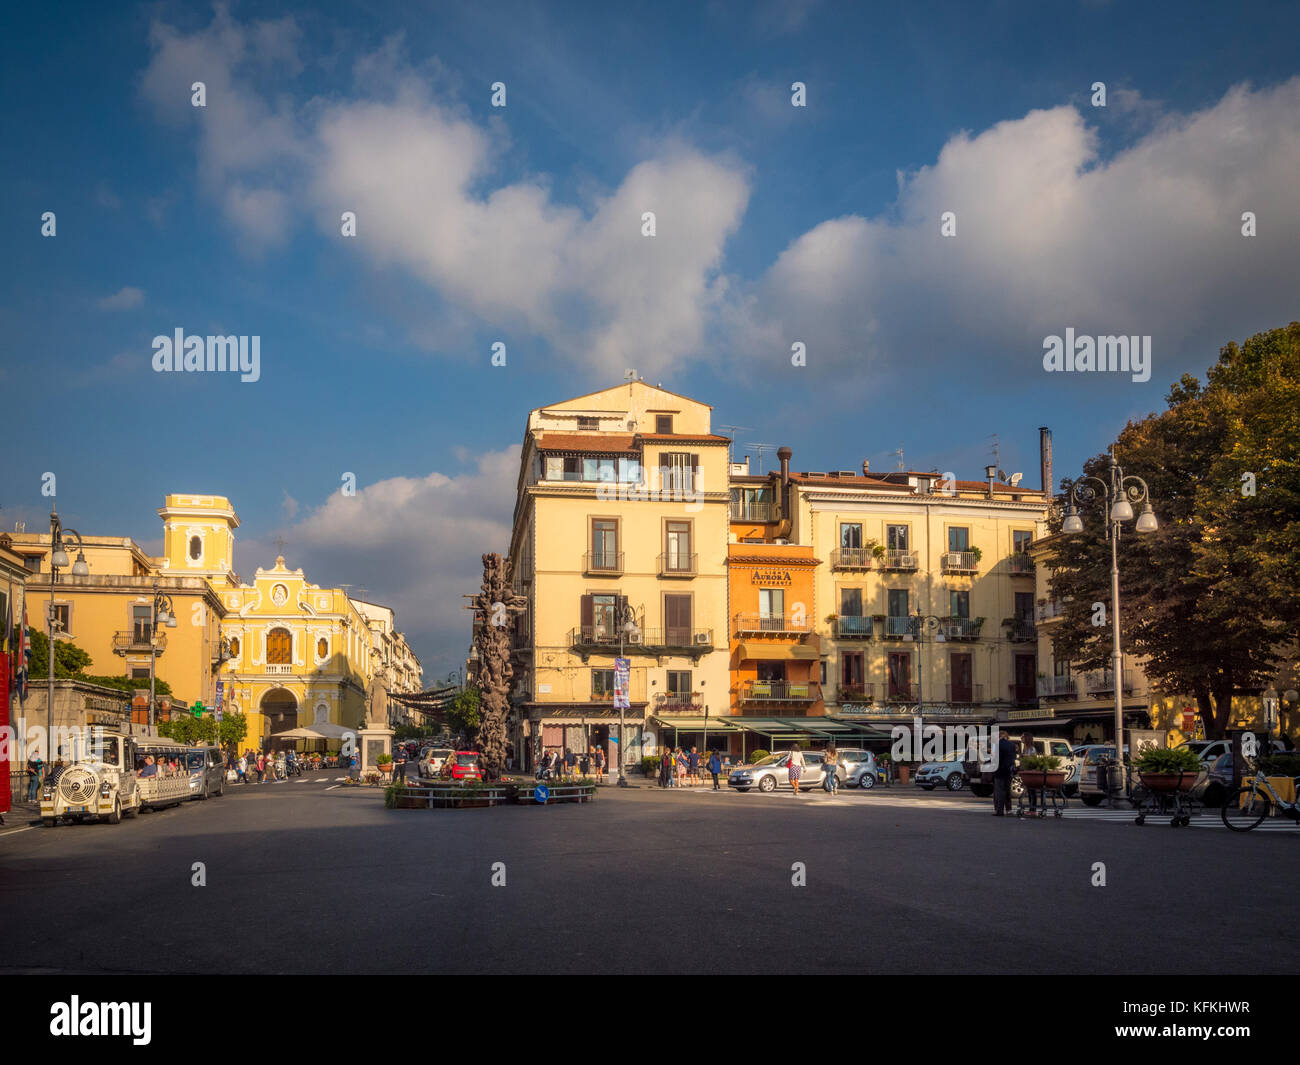 Pugliese stock photos pugliese stock images alamy for Puglia garden city ny